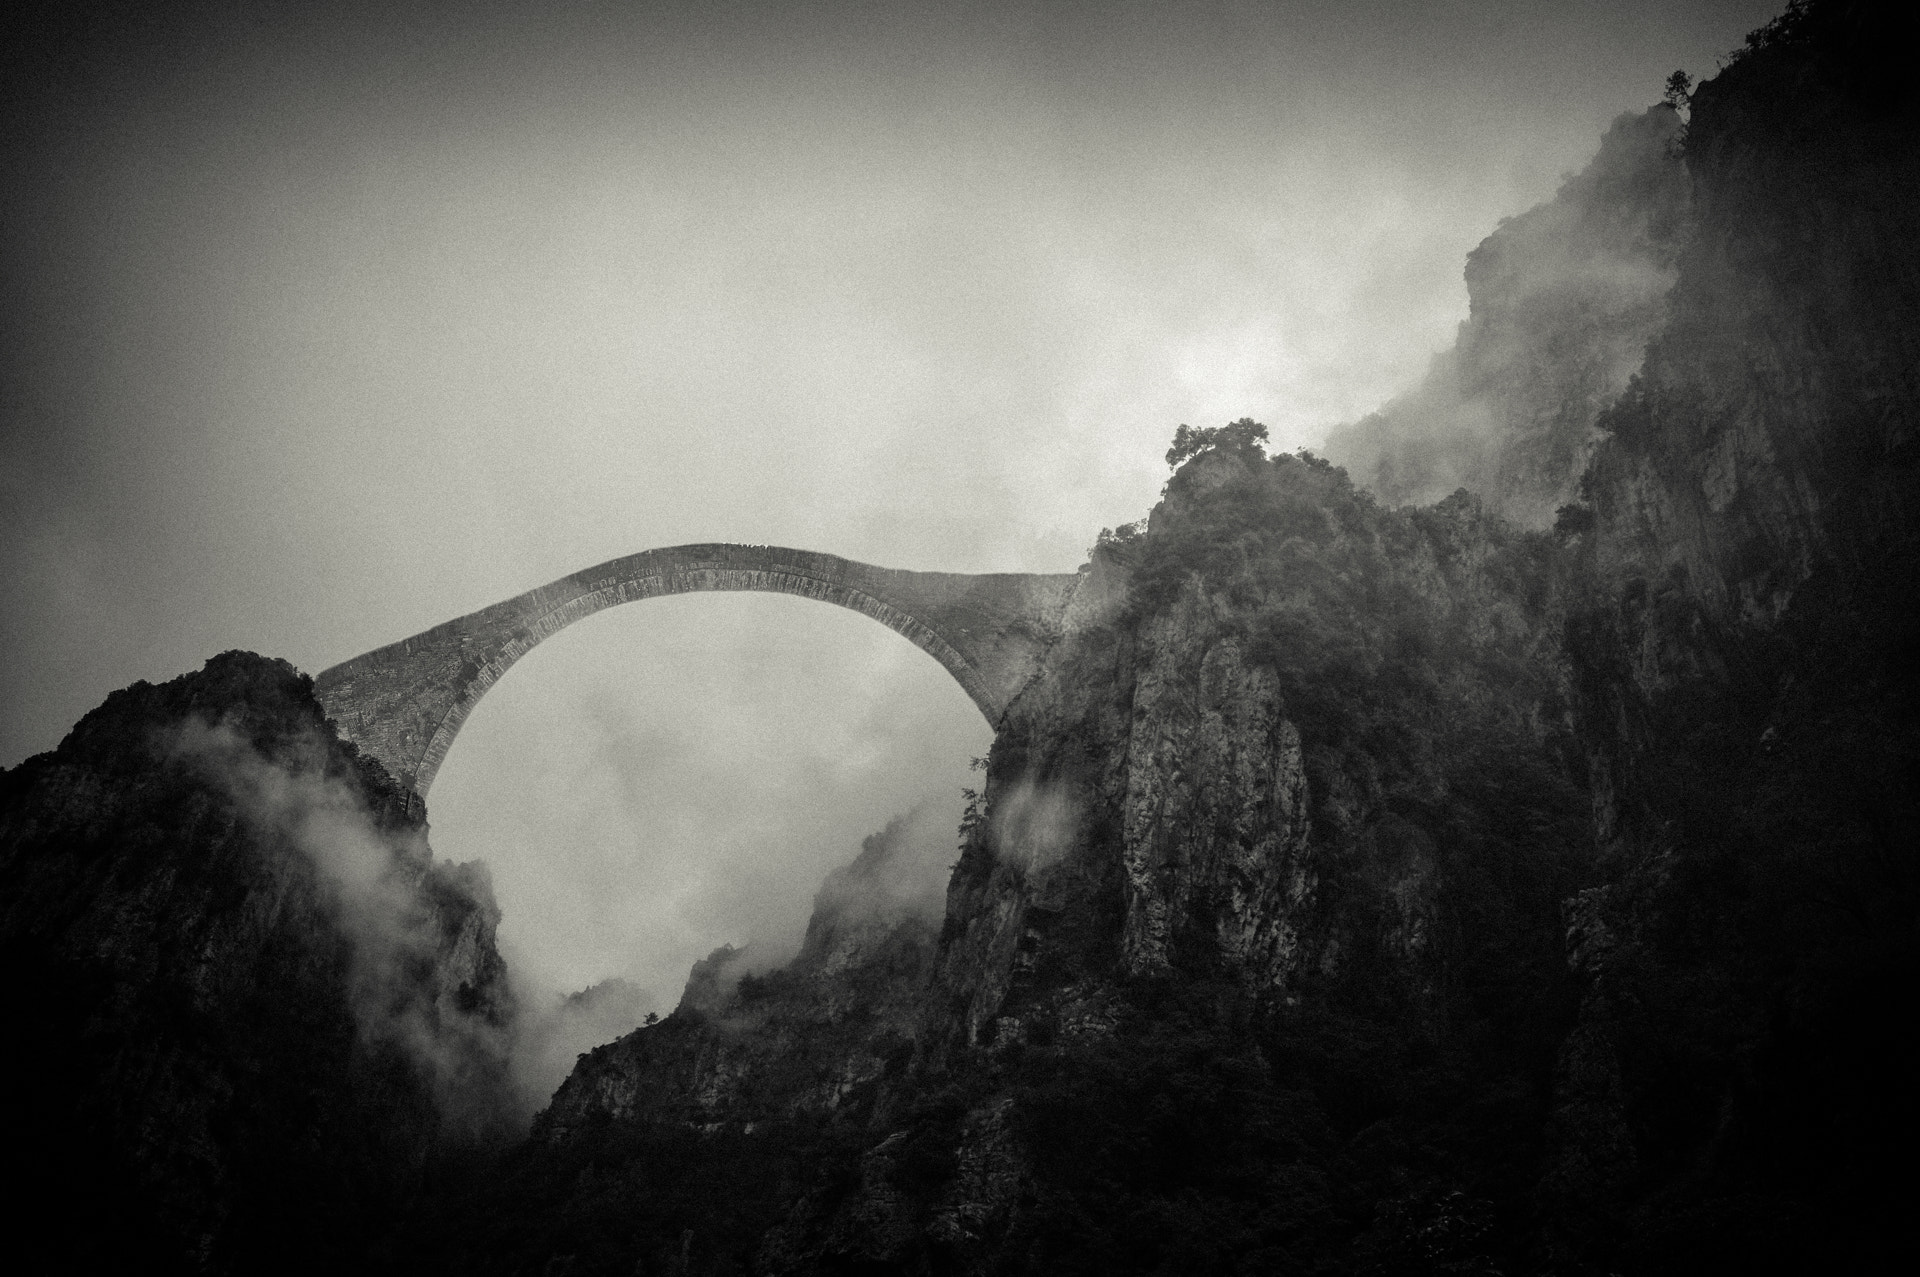 Photograph The old bridge by Christina Fryle on 500px